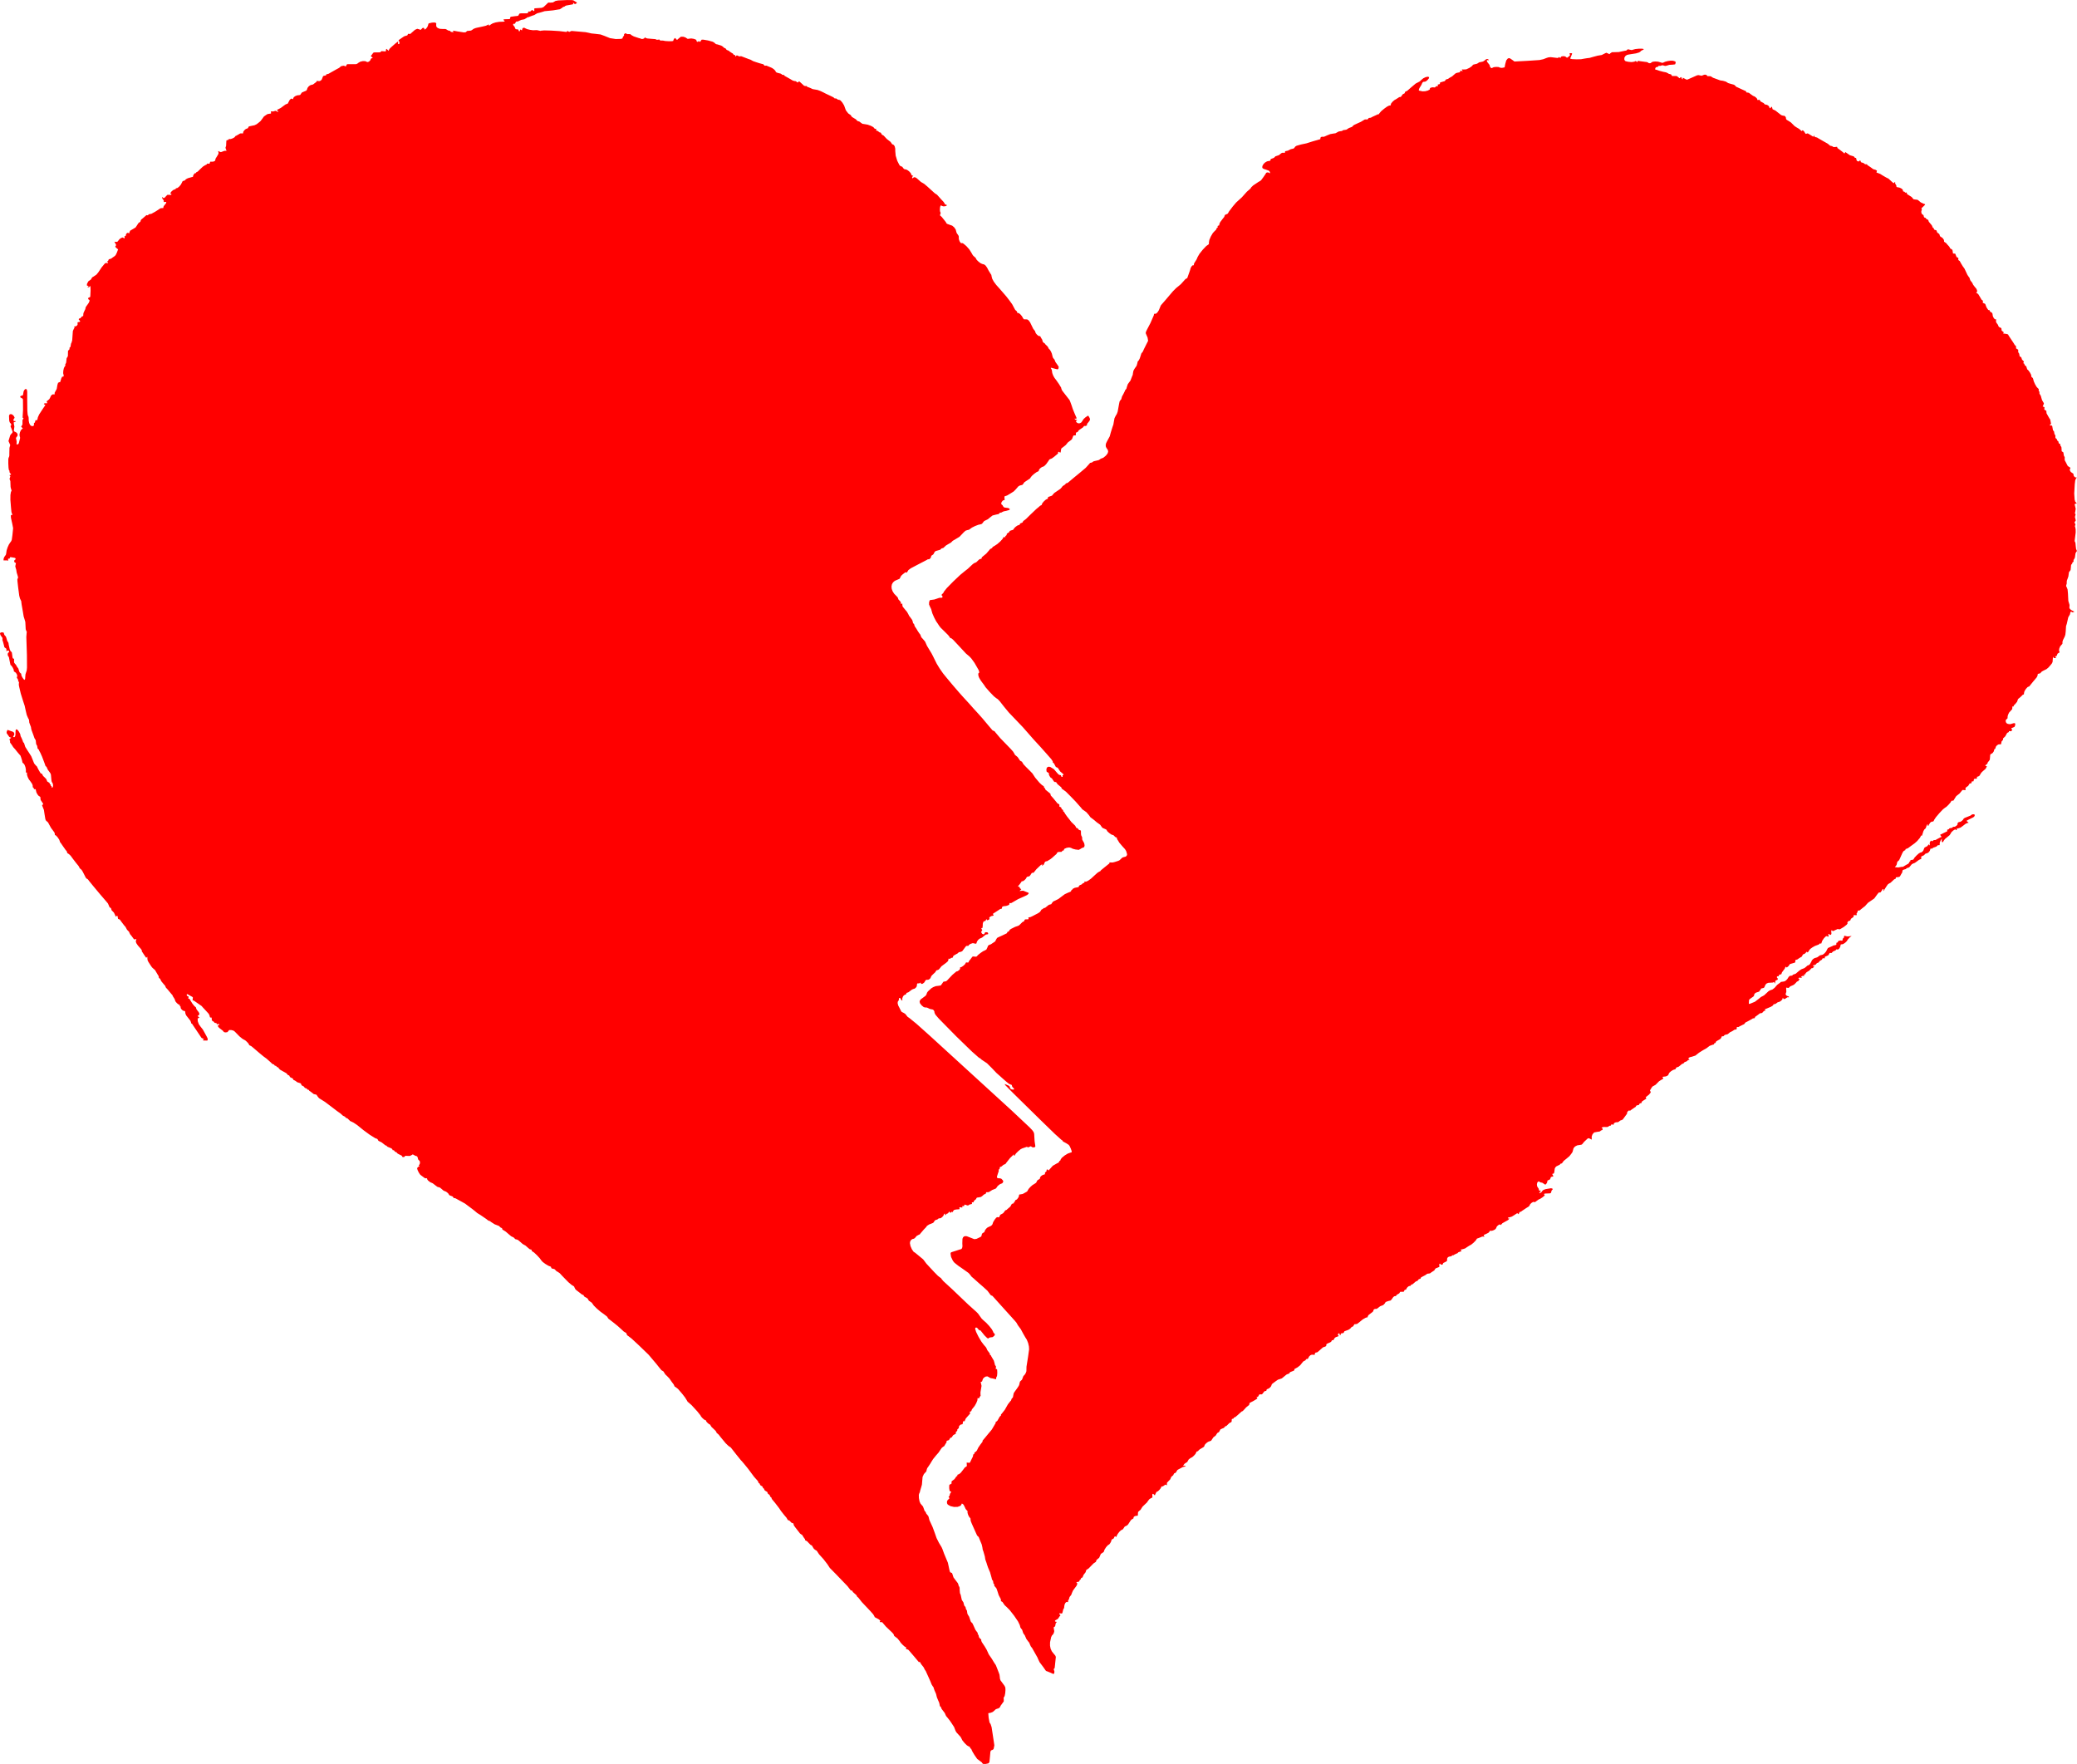 Hearts clipart silhouette. Broken heart at getdrawings